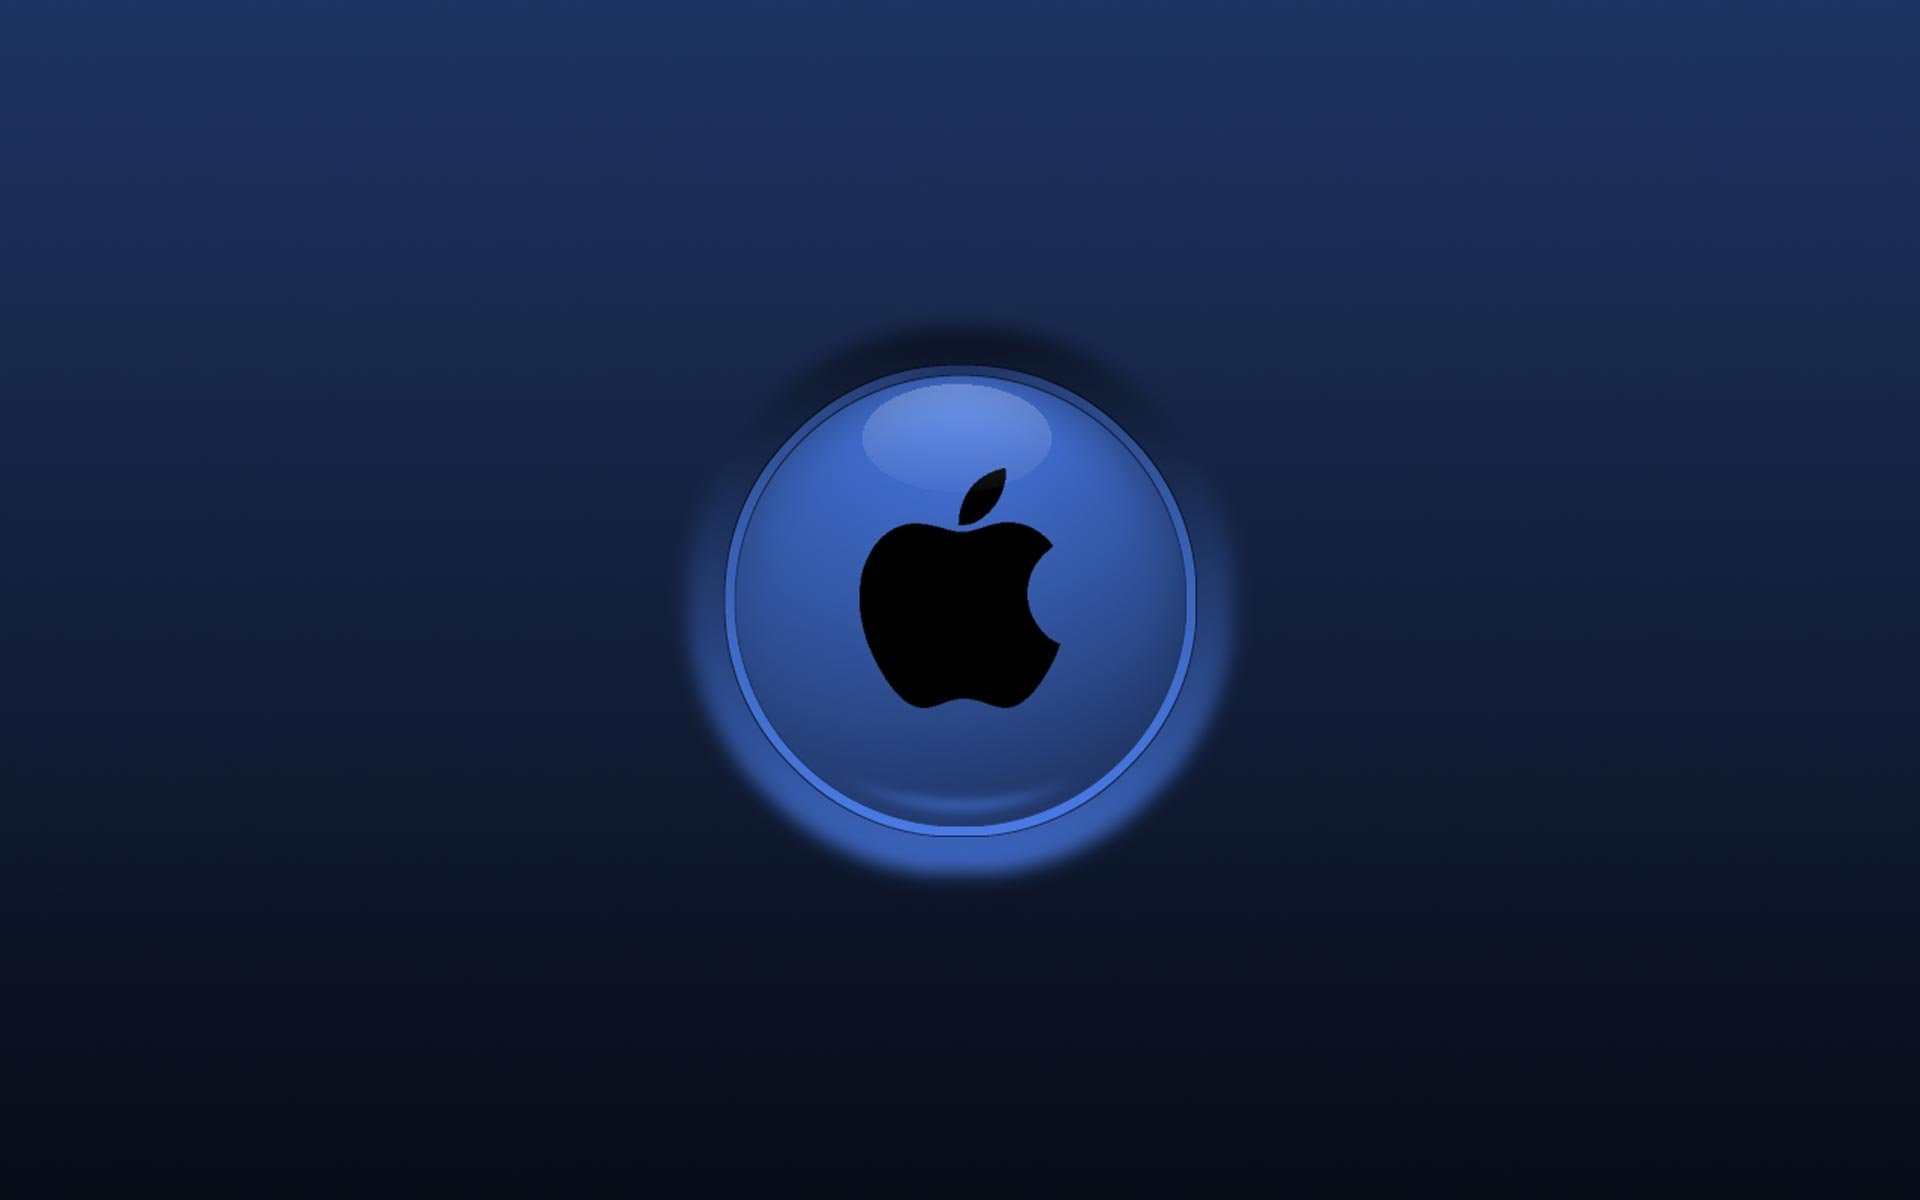 apple wallpapers desktop 33 wallpapers